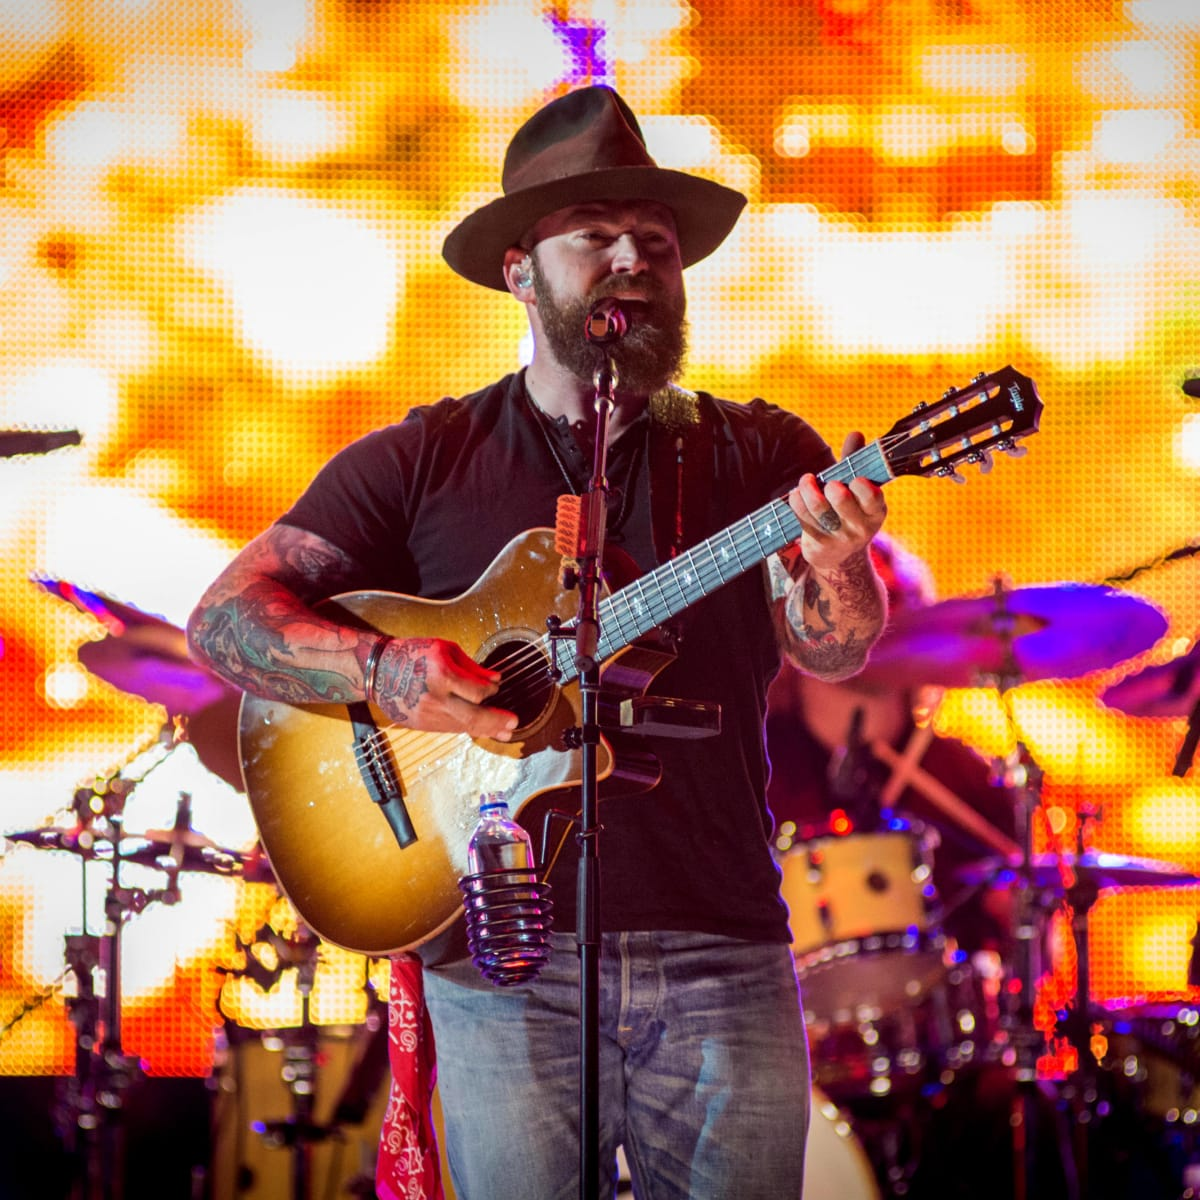 Zac Brown Band Zac Brown mid-song singing